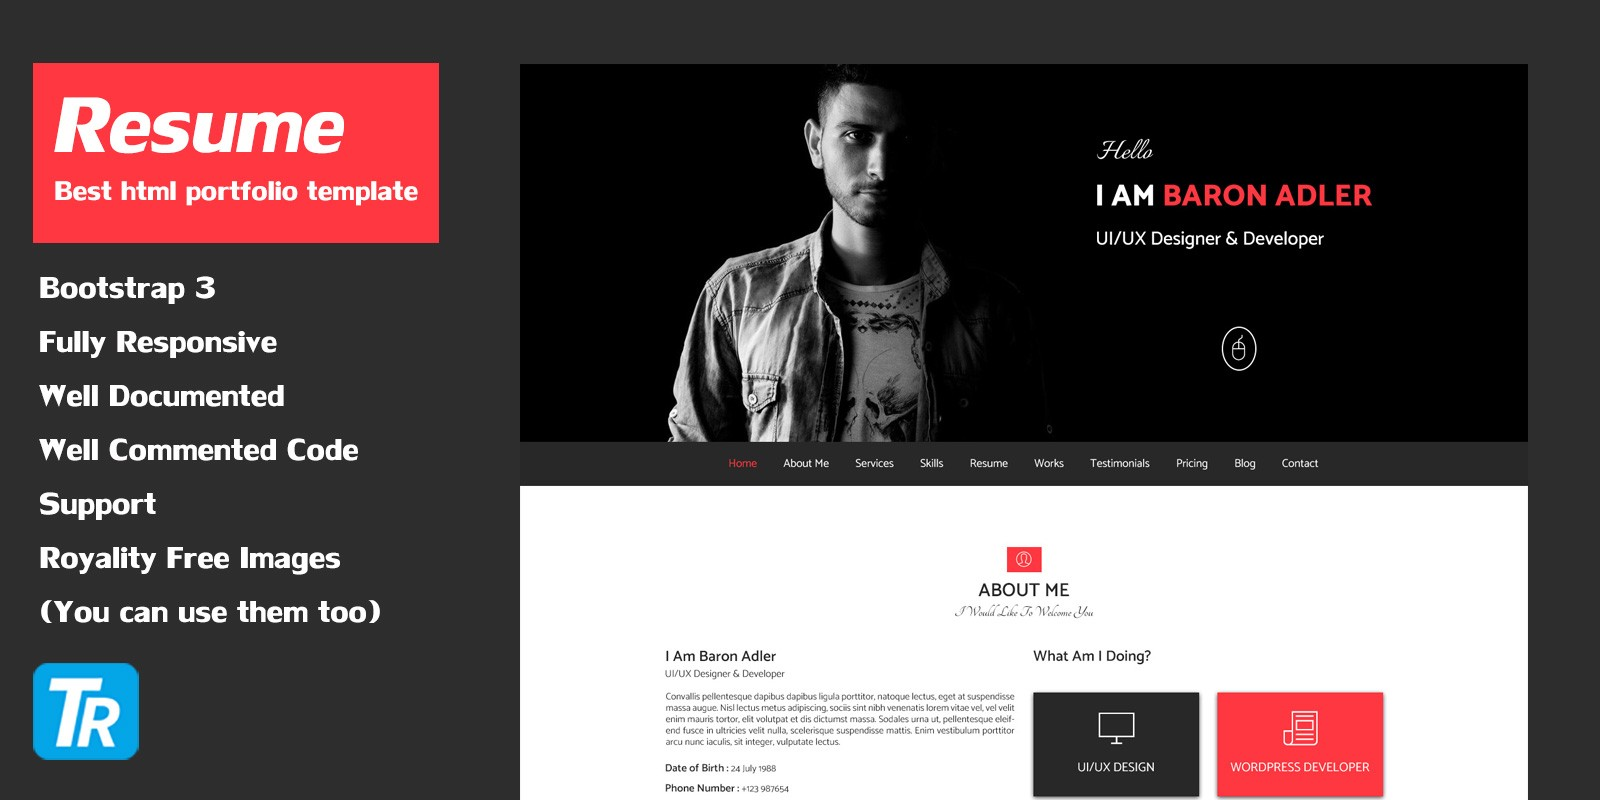 Resume   Personal Portfolio Web Template  Resume Website Template